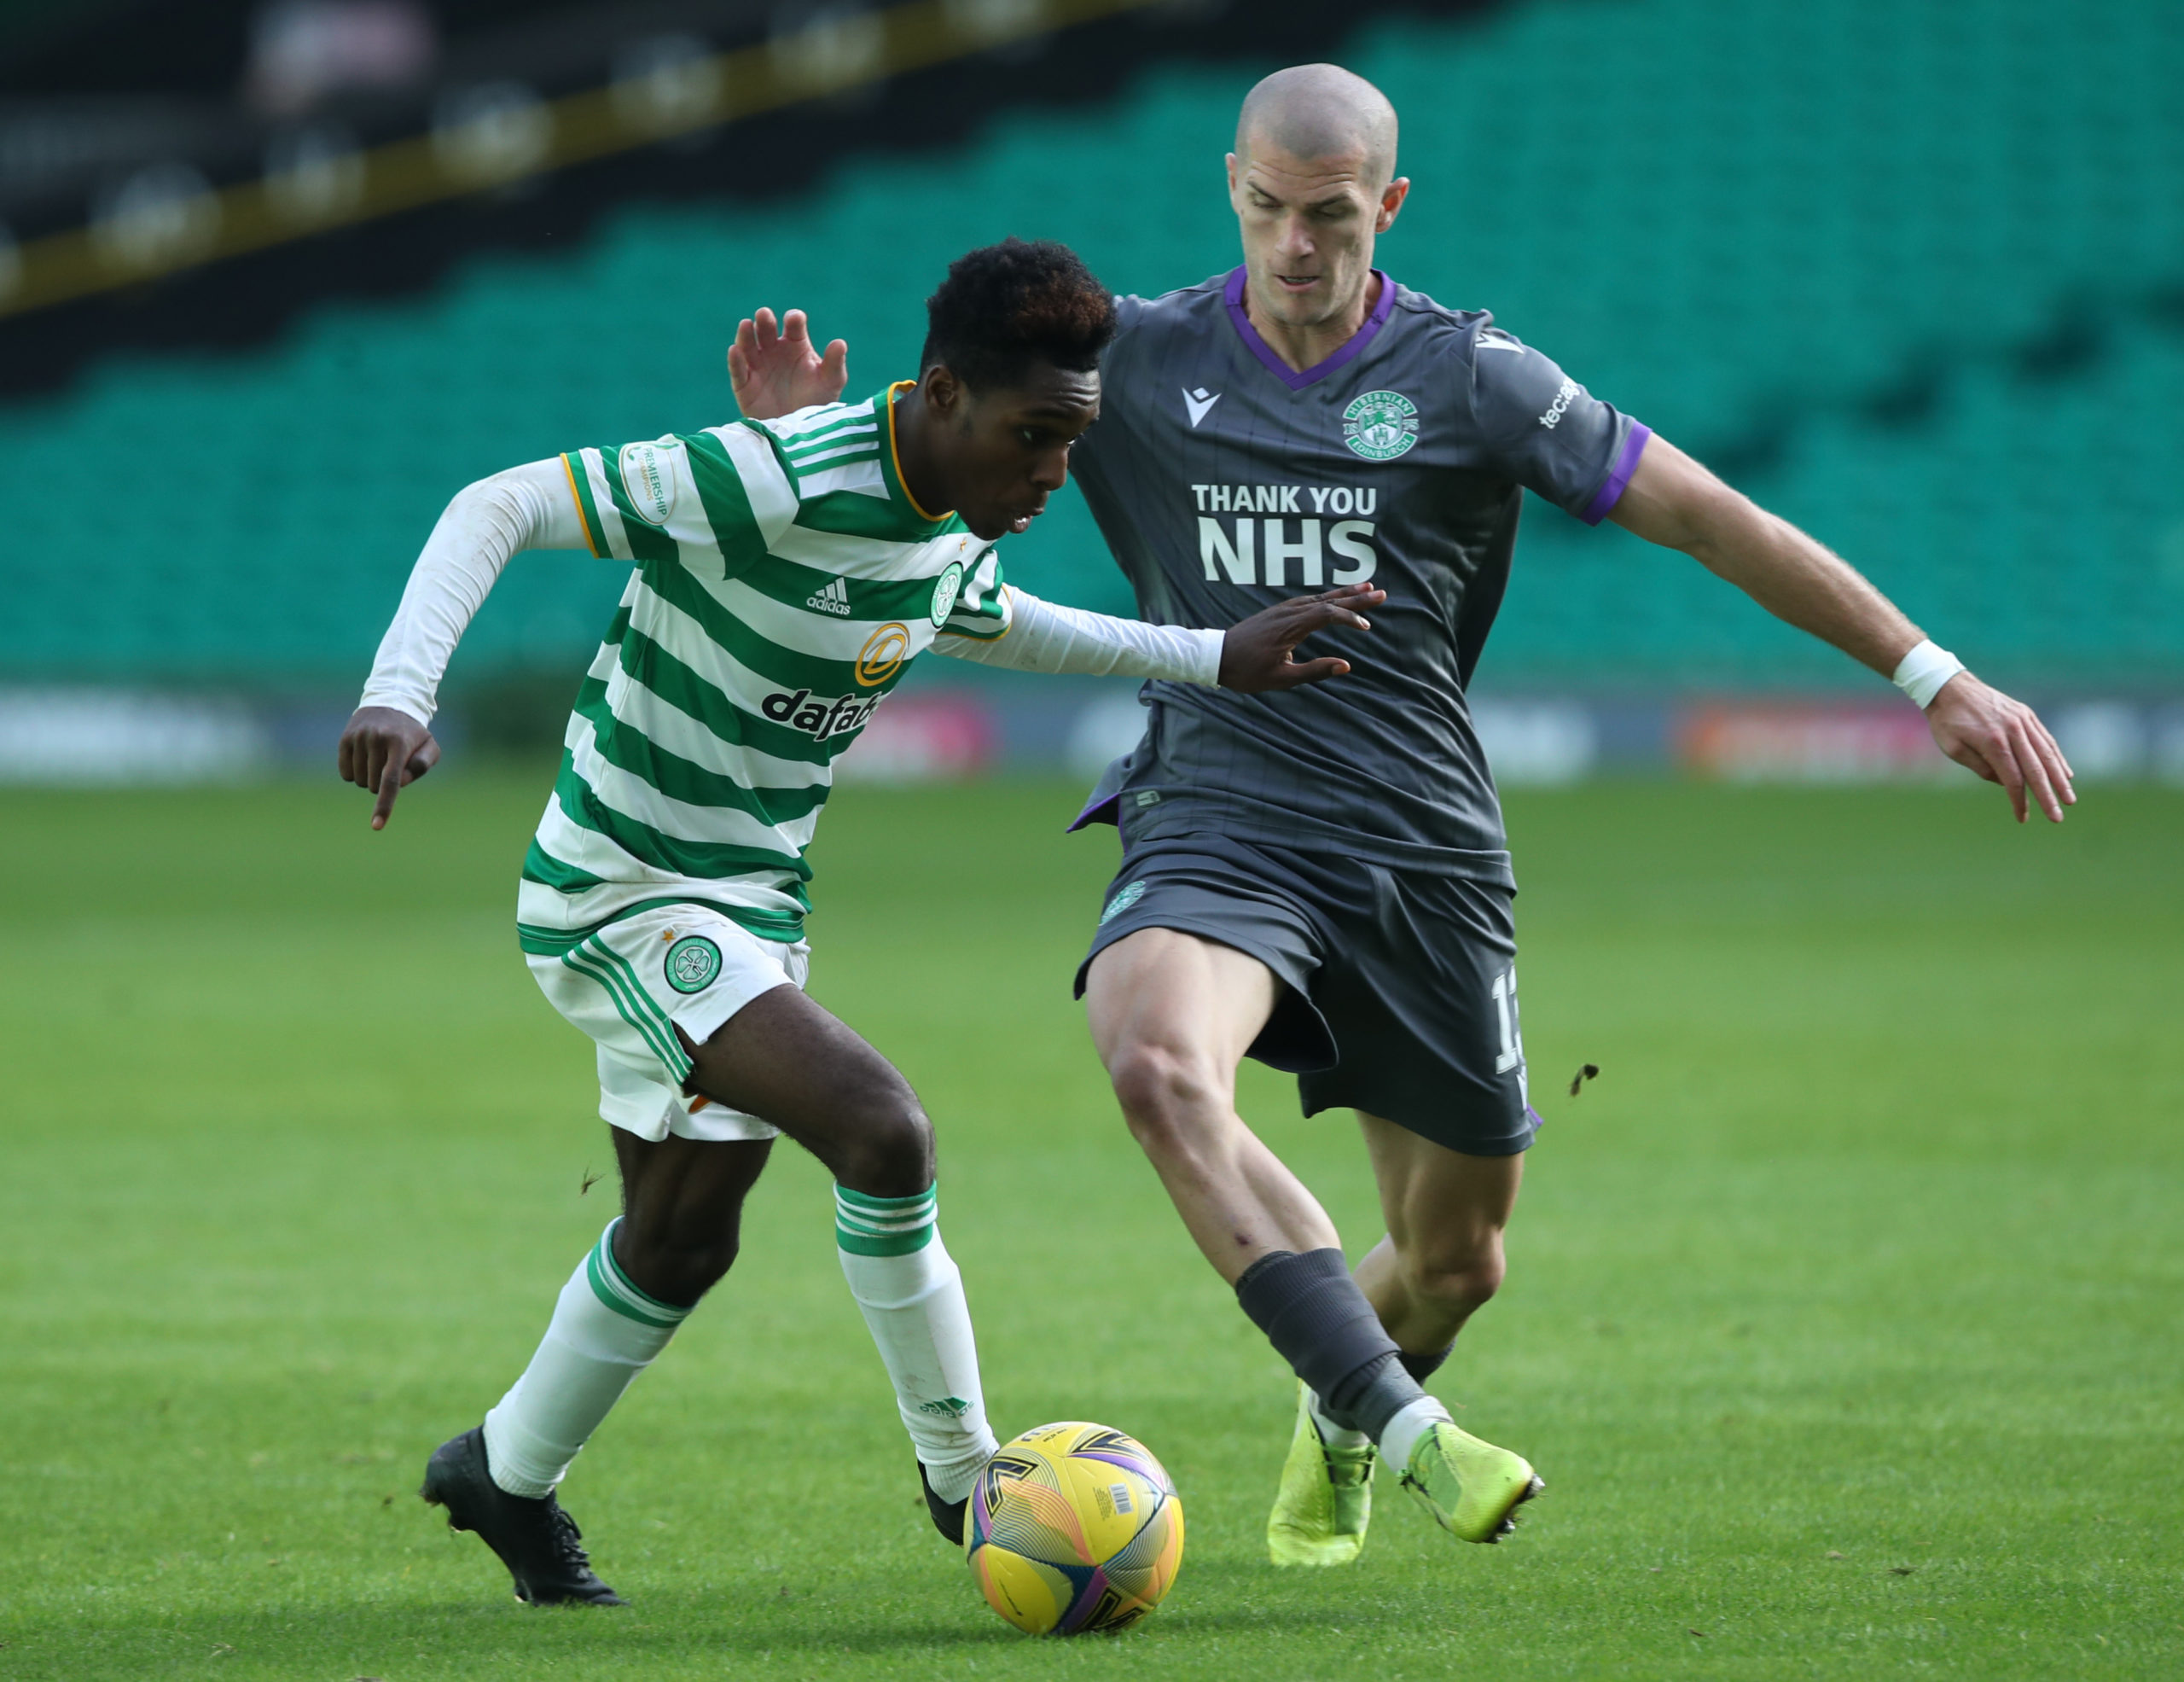 Celtic in action against Hibs